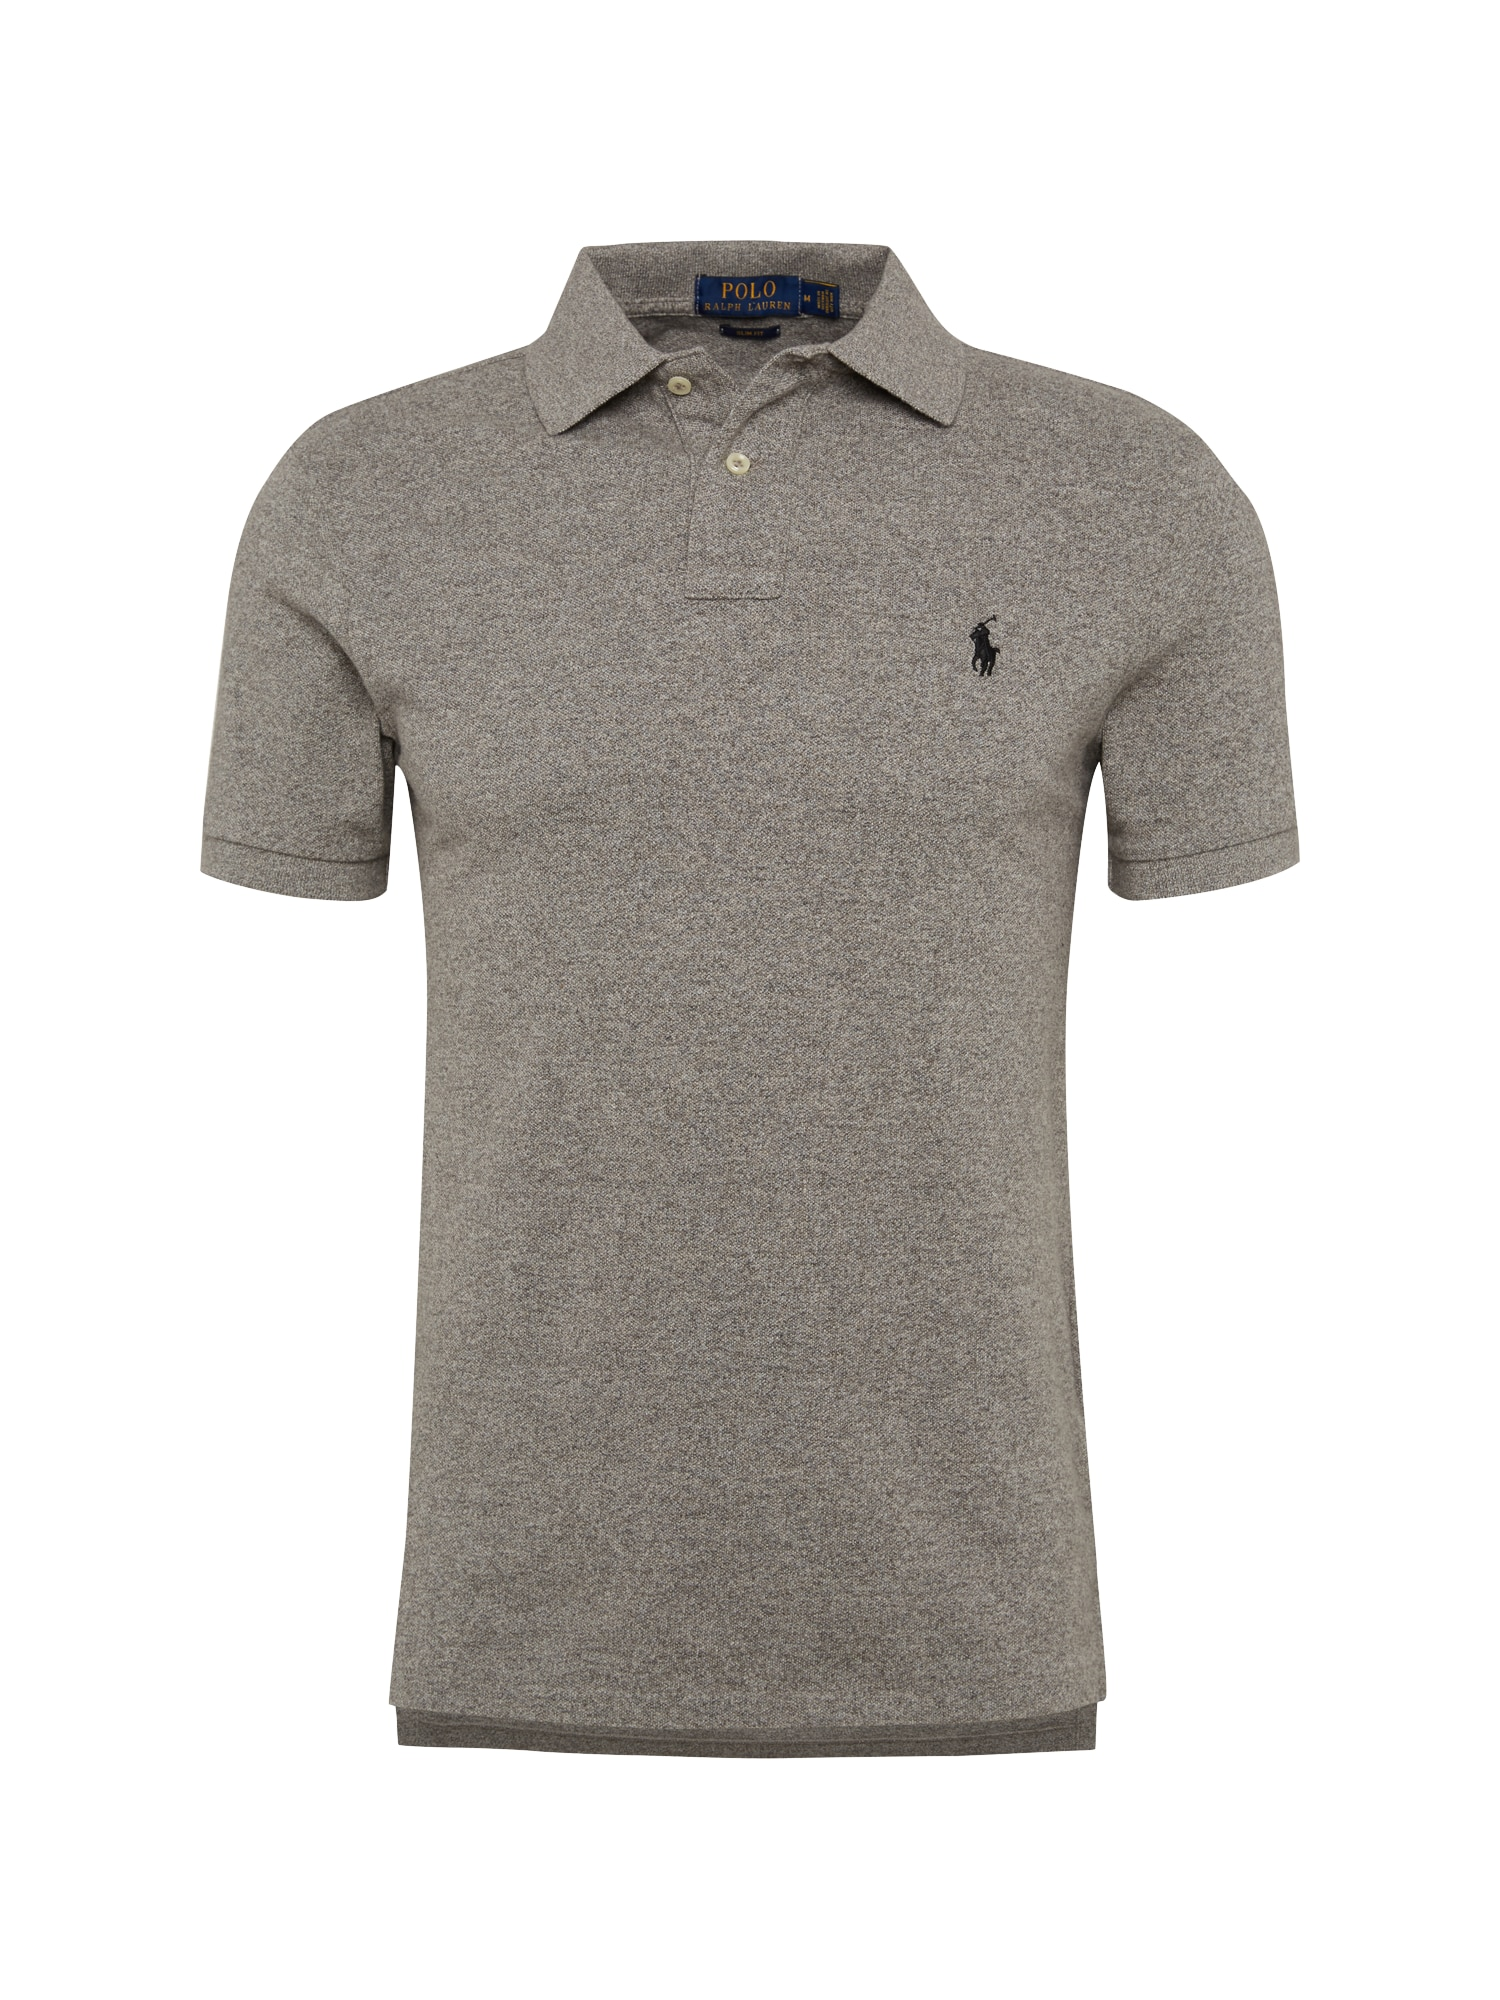 Tričko SS SLIM FIT-SHORT SLEEVE-KNIT šedá POLO RALPH LAUREN